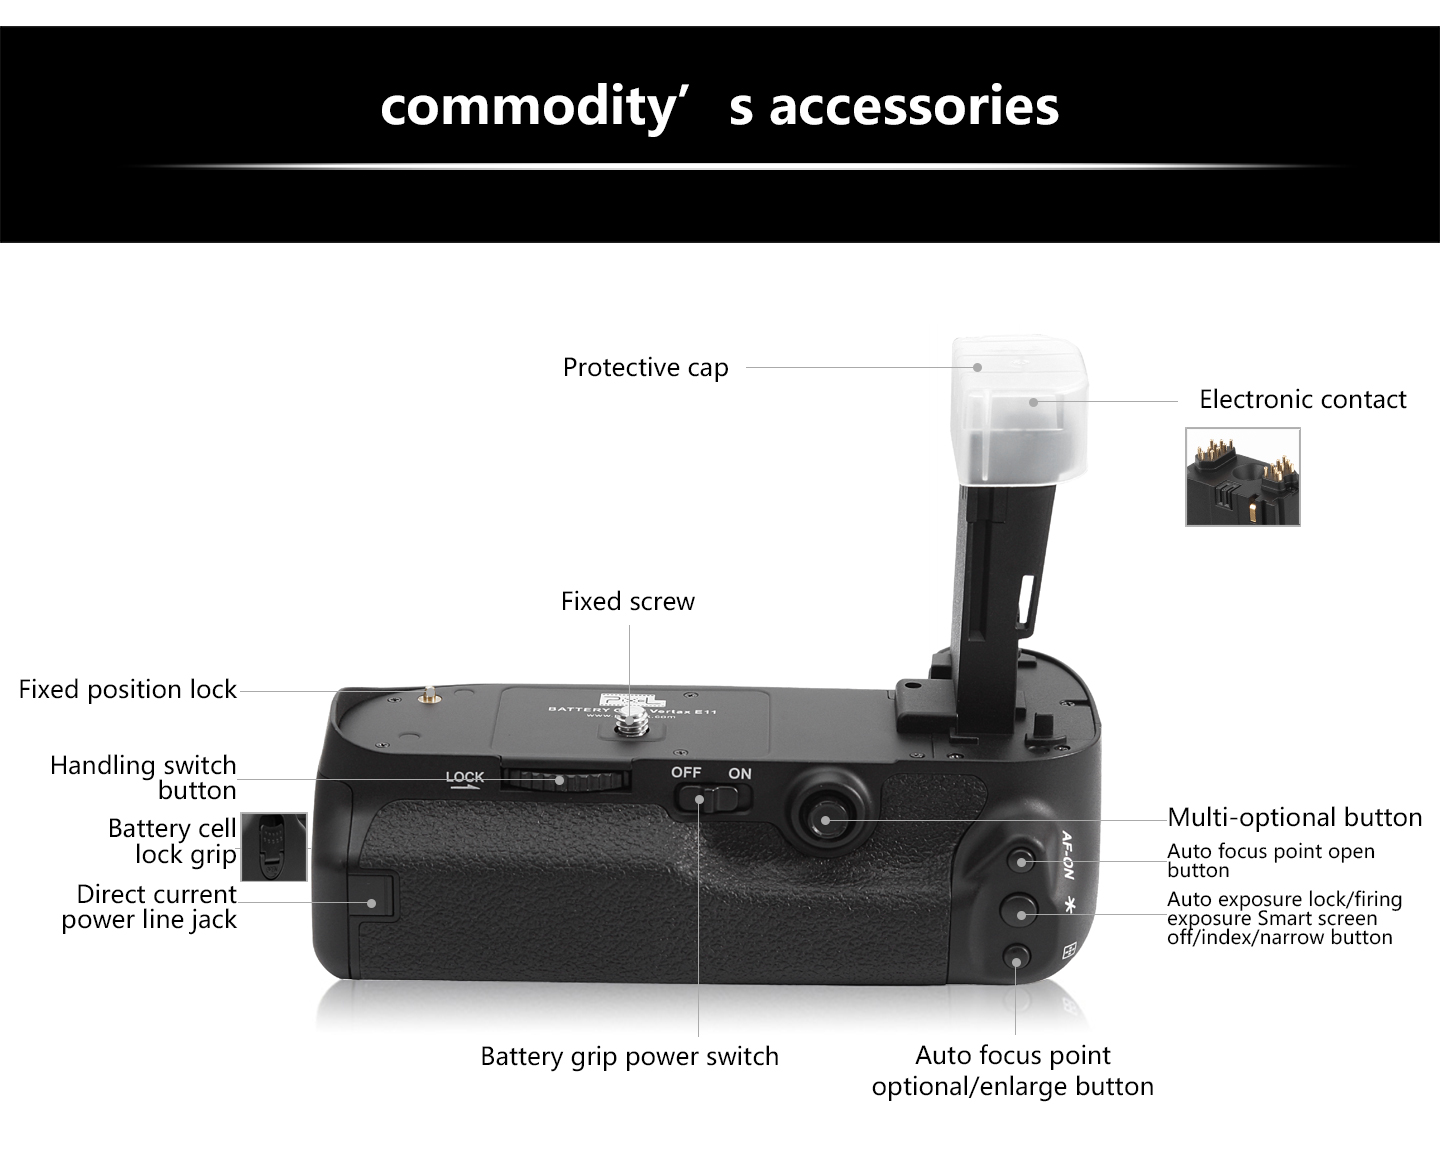 Commodity's accessories